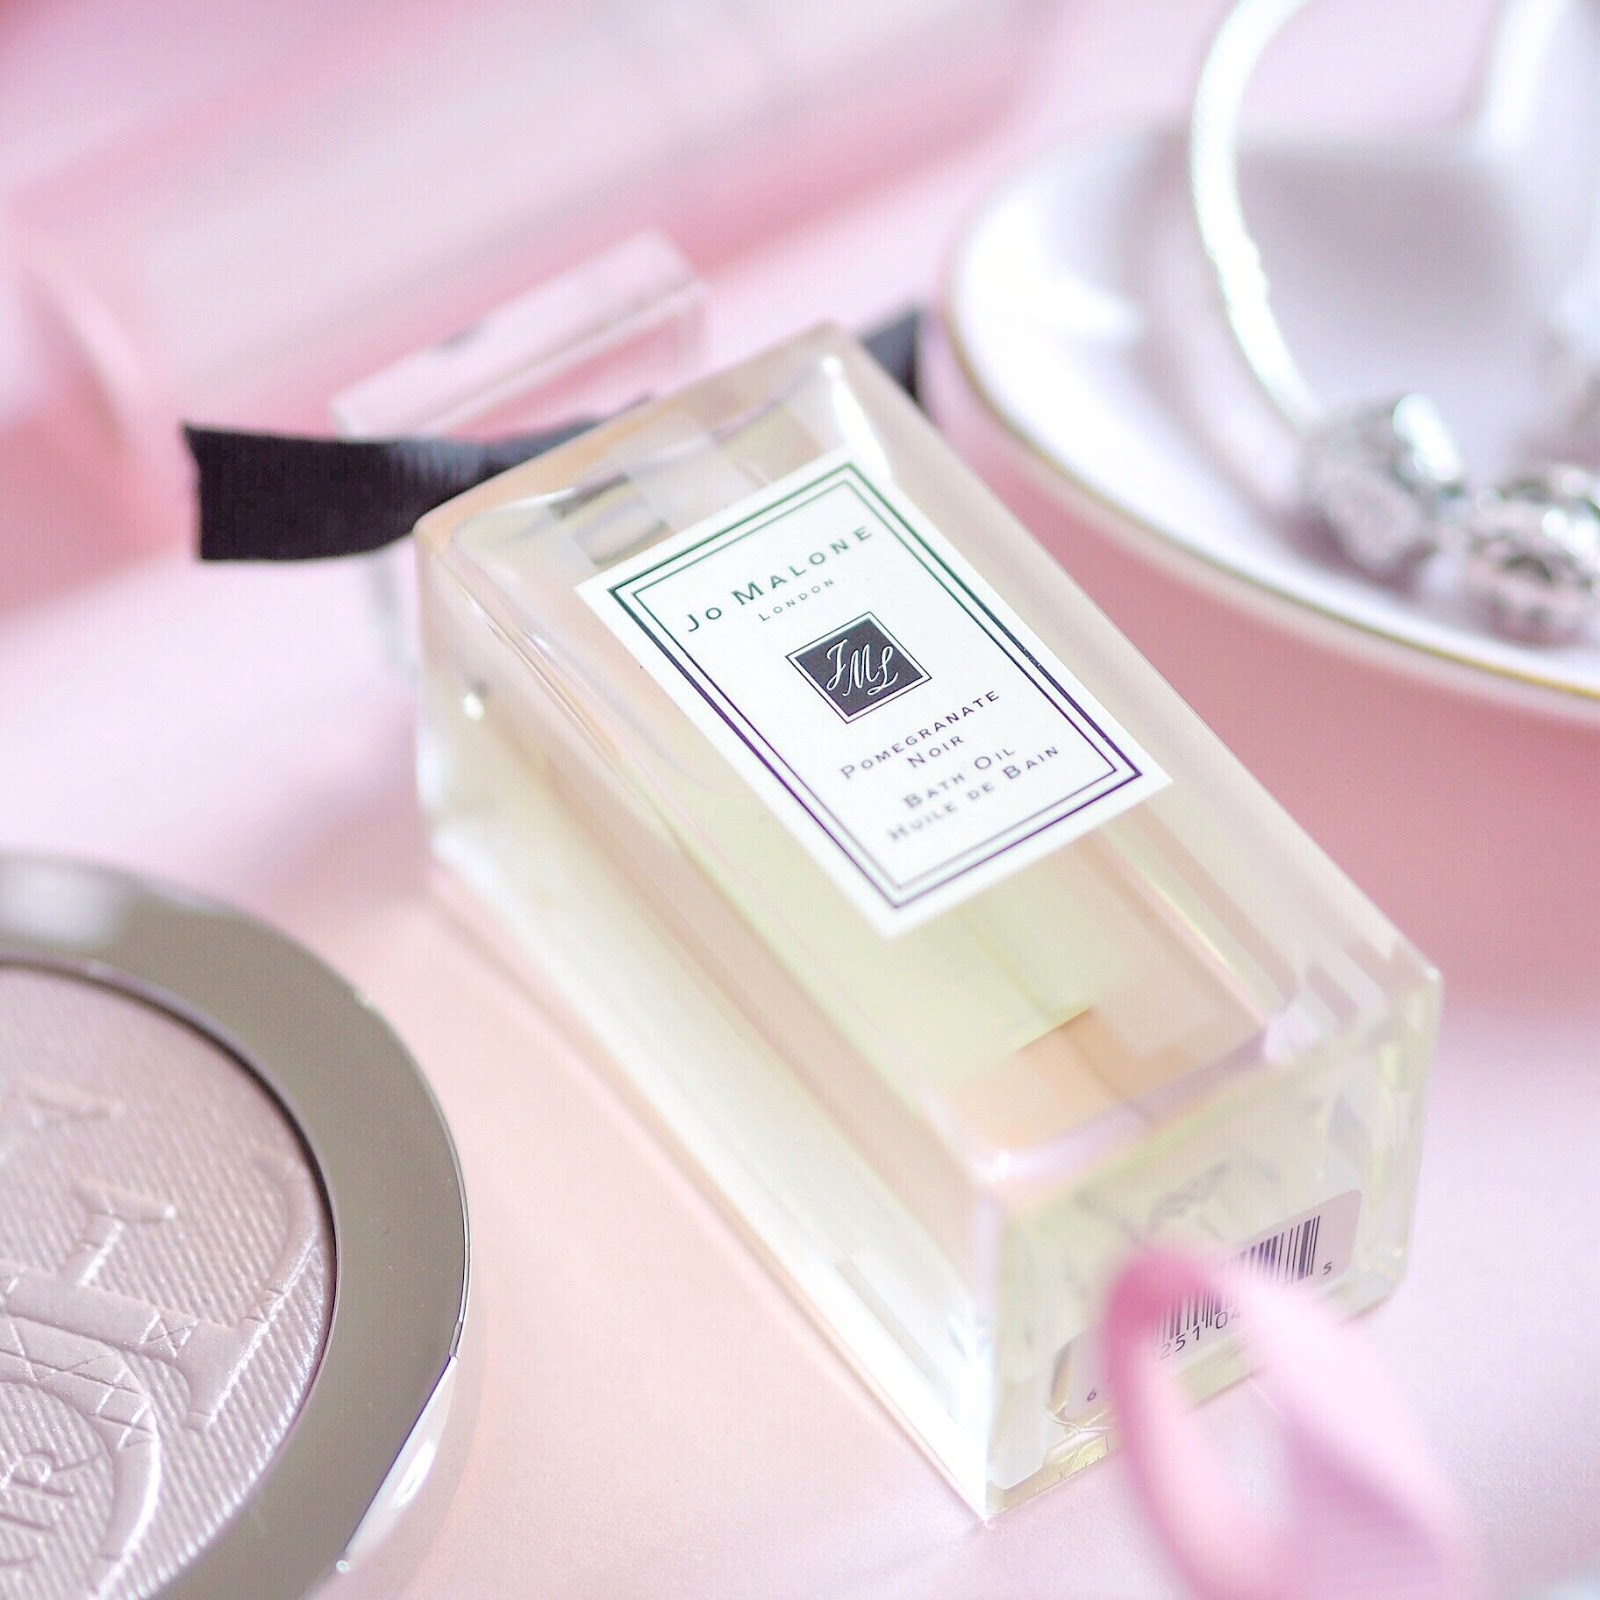 Jo Malone Pomegranate Noir Bath Oil | What I Got Treated To On Christmas Day